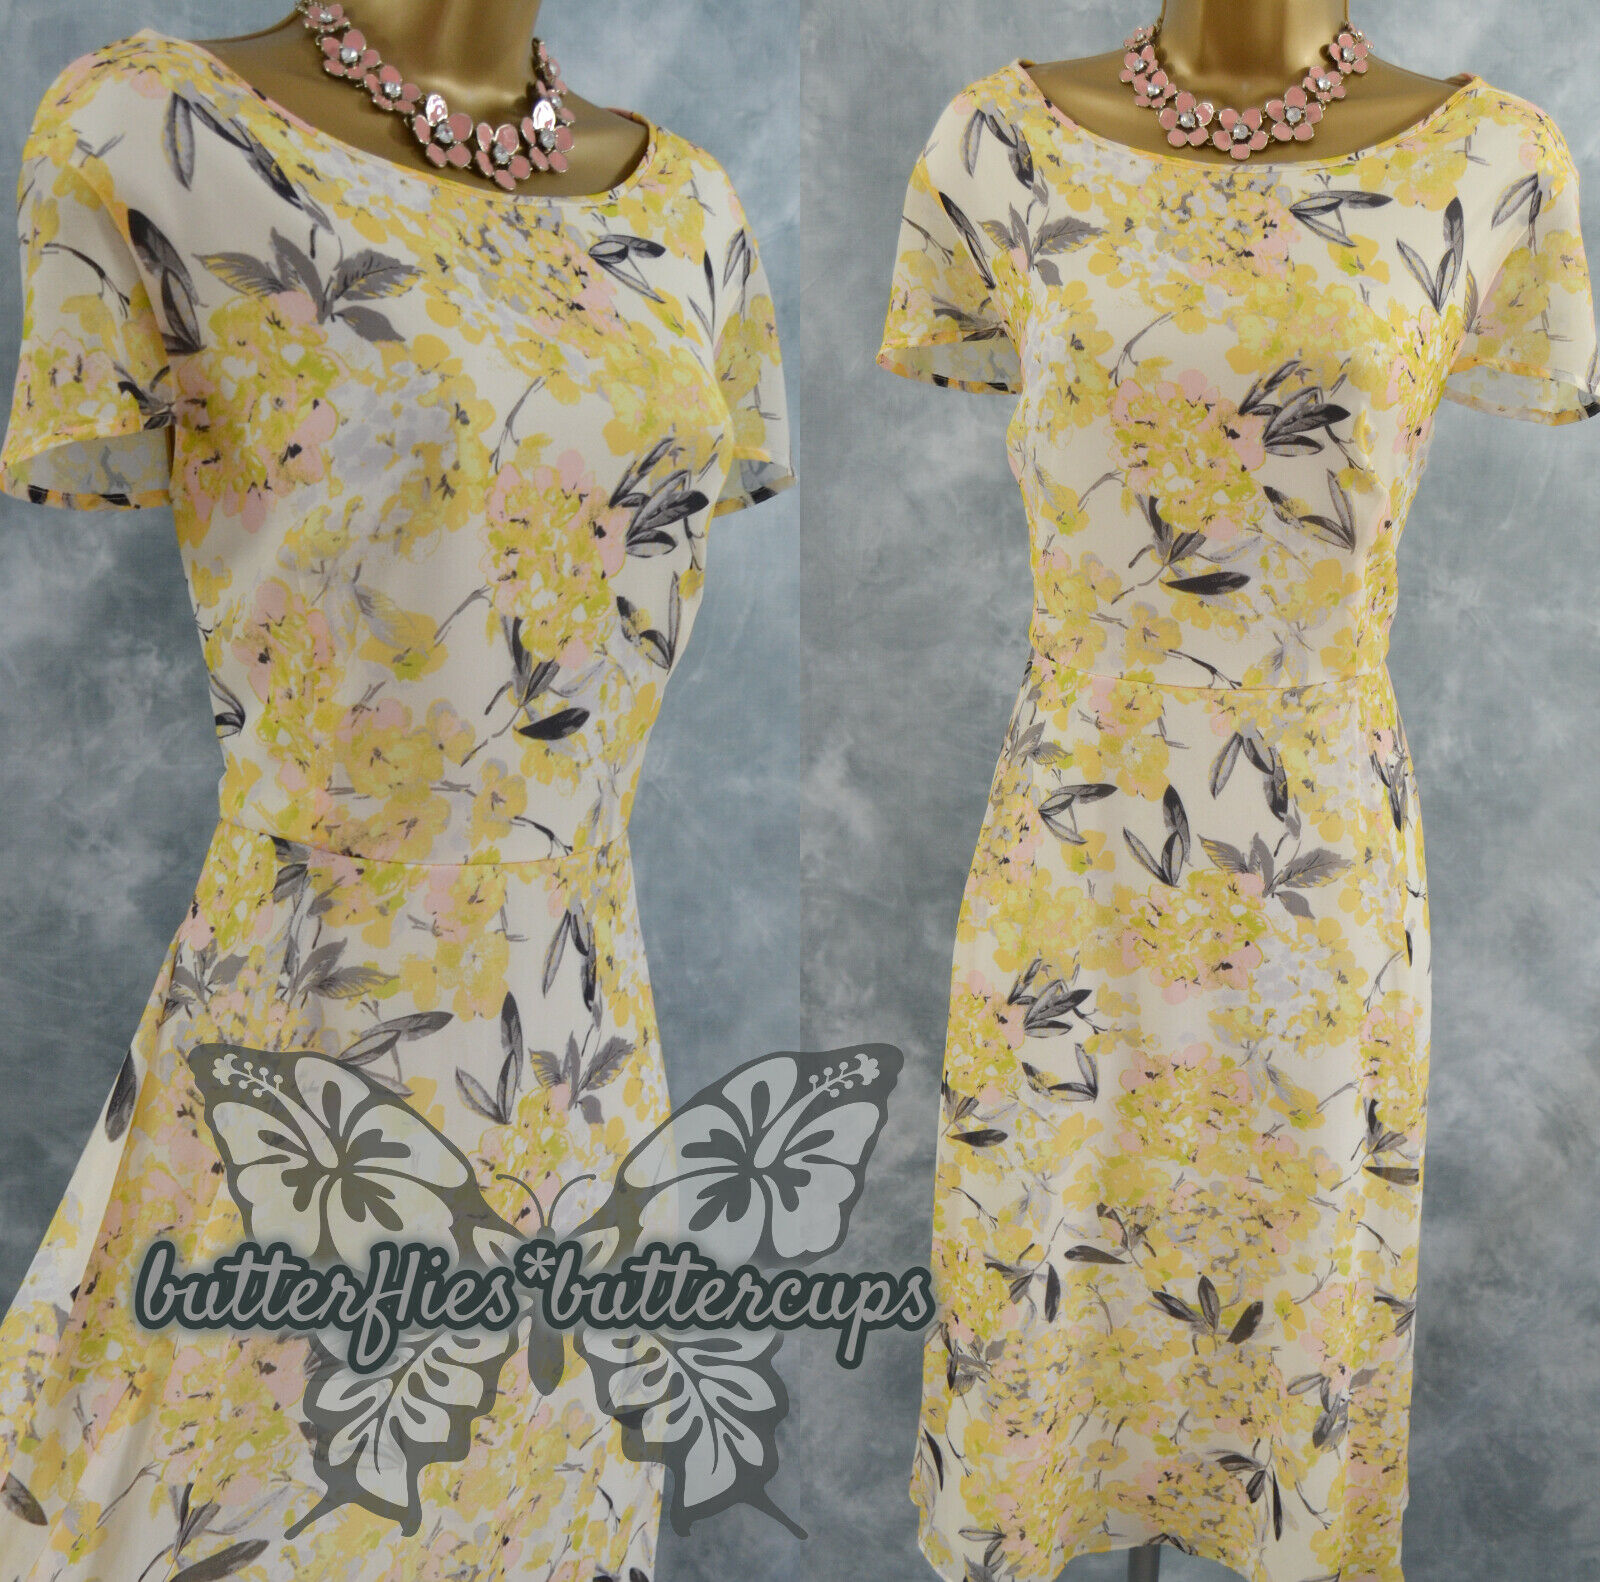 ~ DOROTHY PERKINS ~ Size 18 Primrose Dress Suit Mother of the Bride Outfit